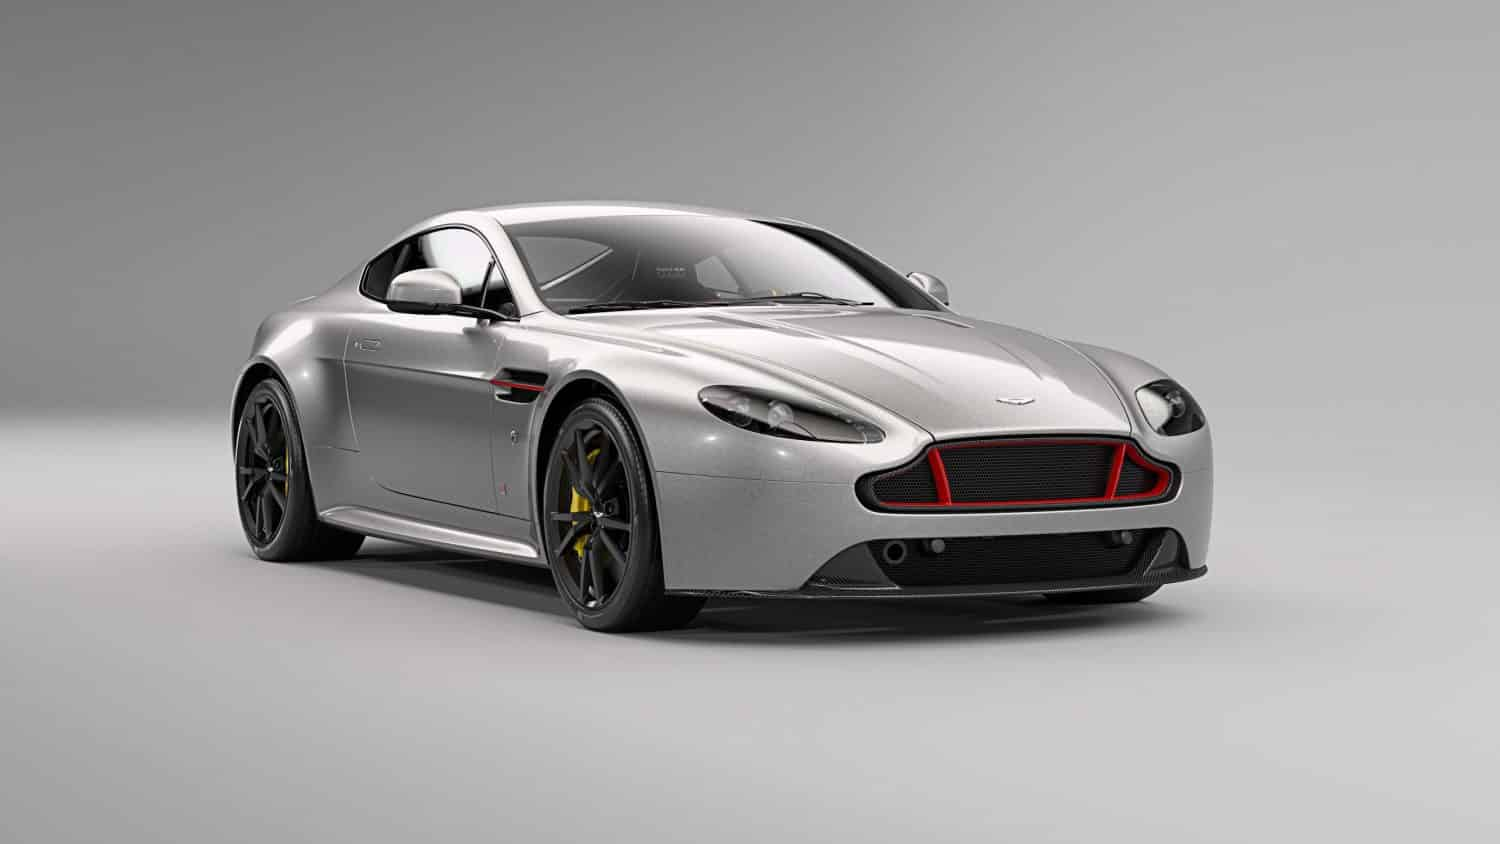 Aston Martin Vantage S Red Bull Racing Edition in Tungsten Silver